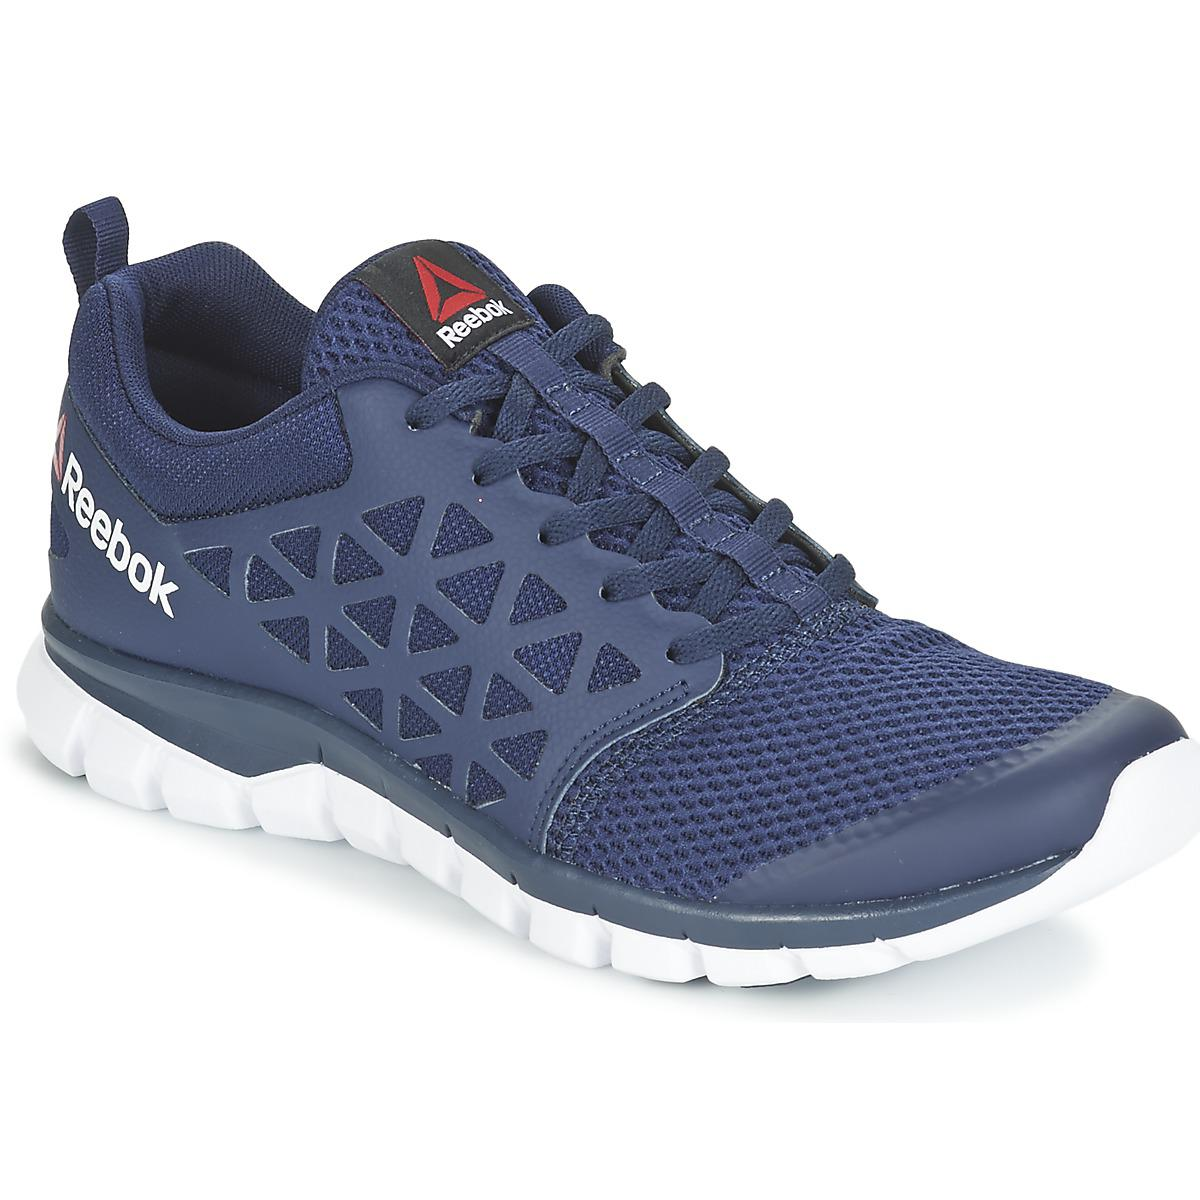 Reebok Sublite Xt Cushion Men s Running Trainers In Blue in Blue for ... 5b8b78af1